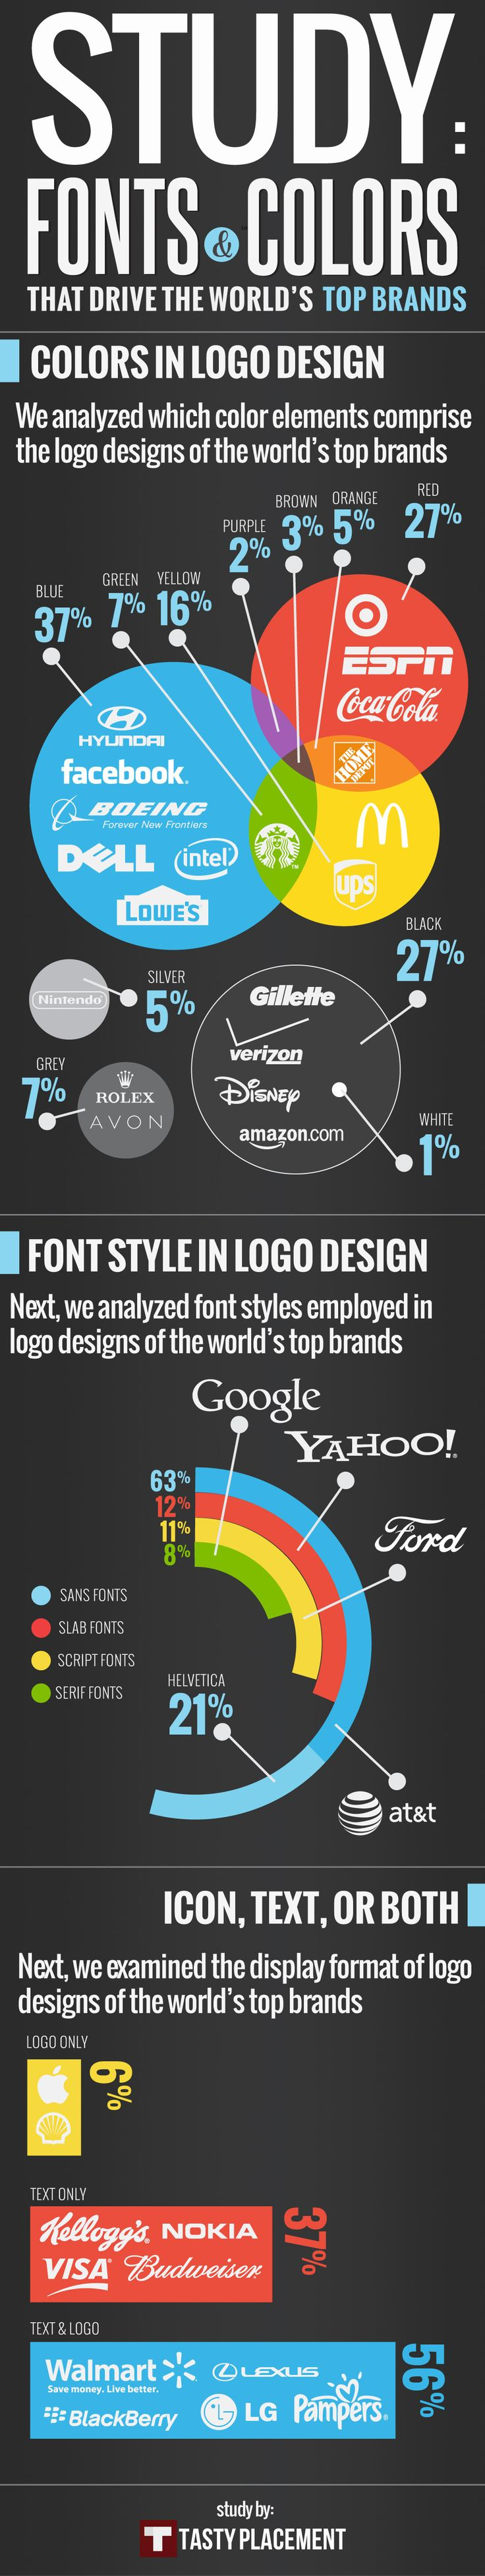 Fonts & colors that drive the world's top brands // Fuentes tipográficas y colores que dominan el mundo de las mejores marcas.